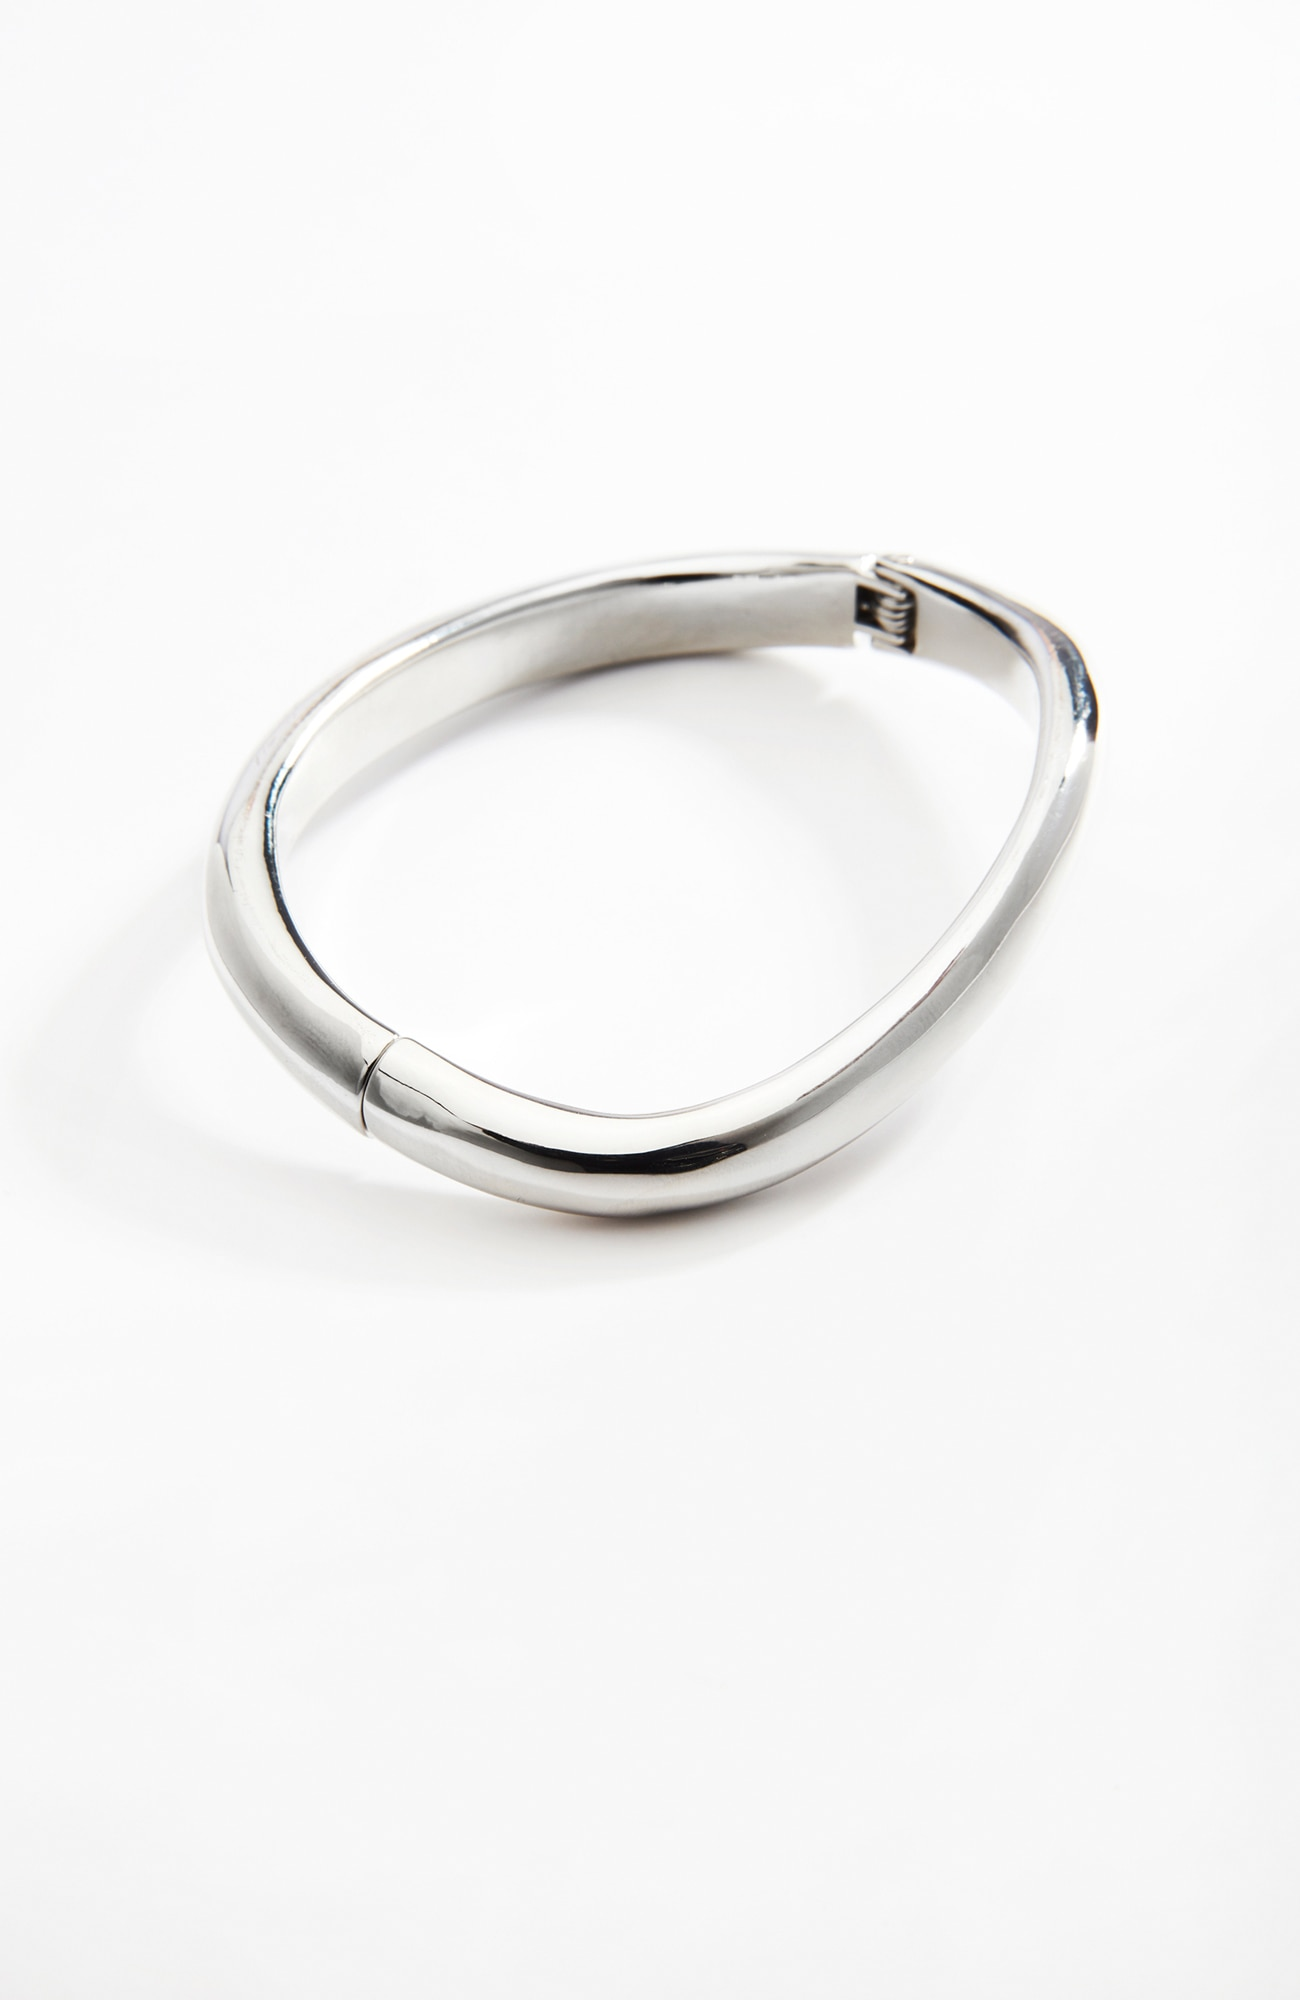 sculpted hinged bangle